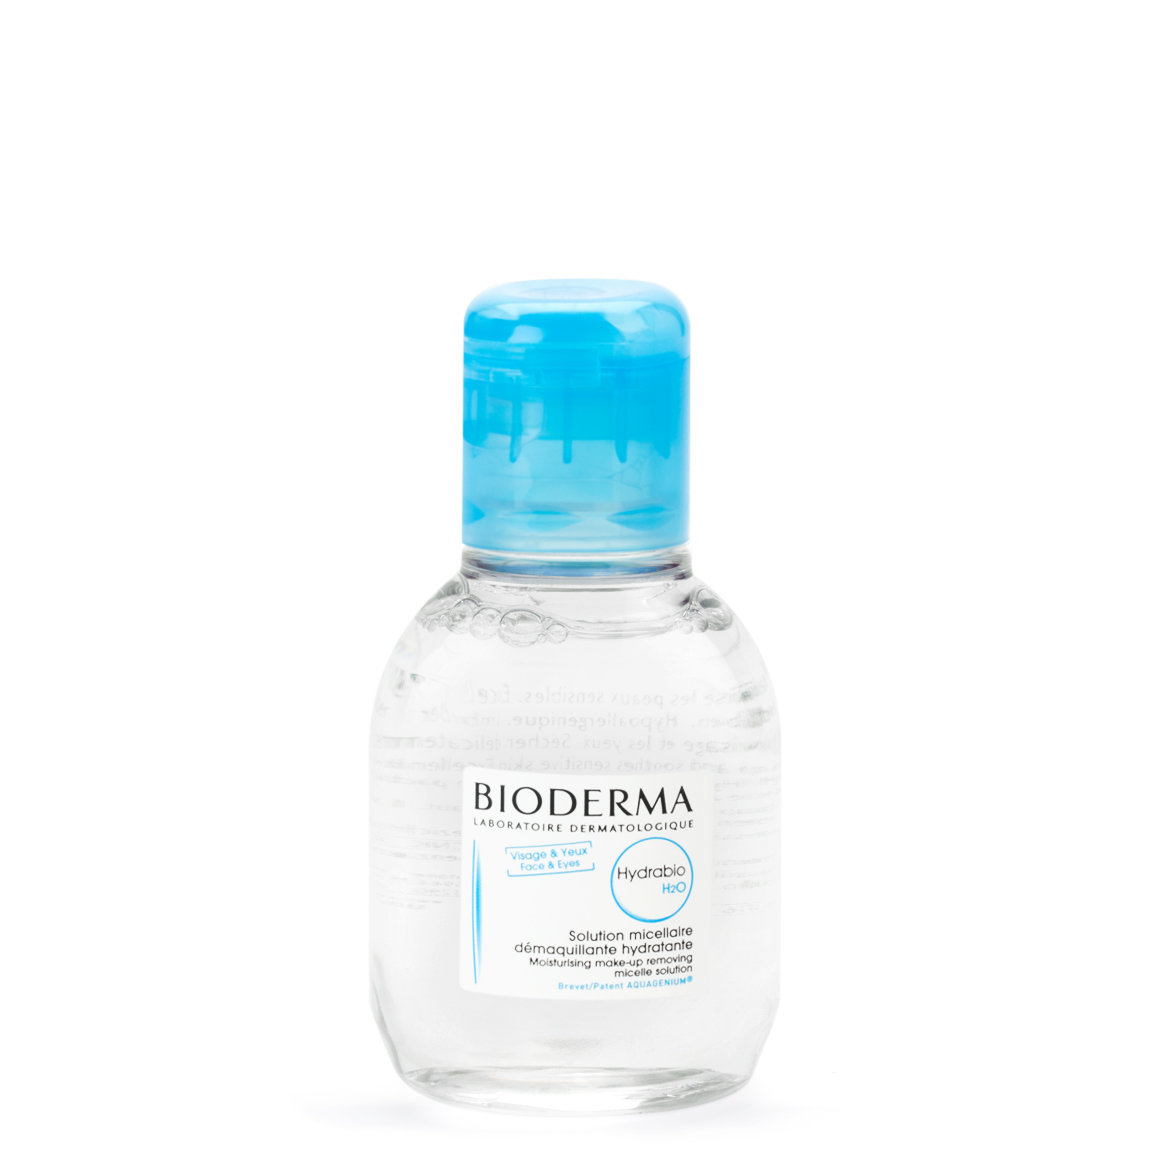 Bioderma Hydrabio H2O 100 ml alternative view 1 - product swatch.